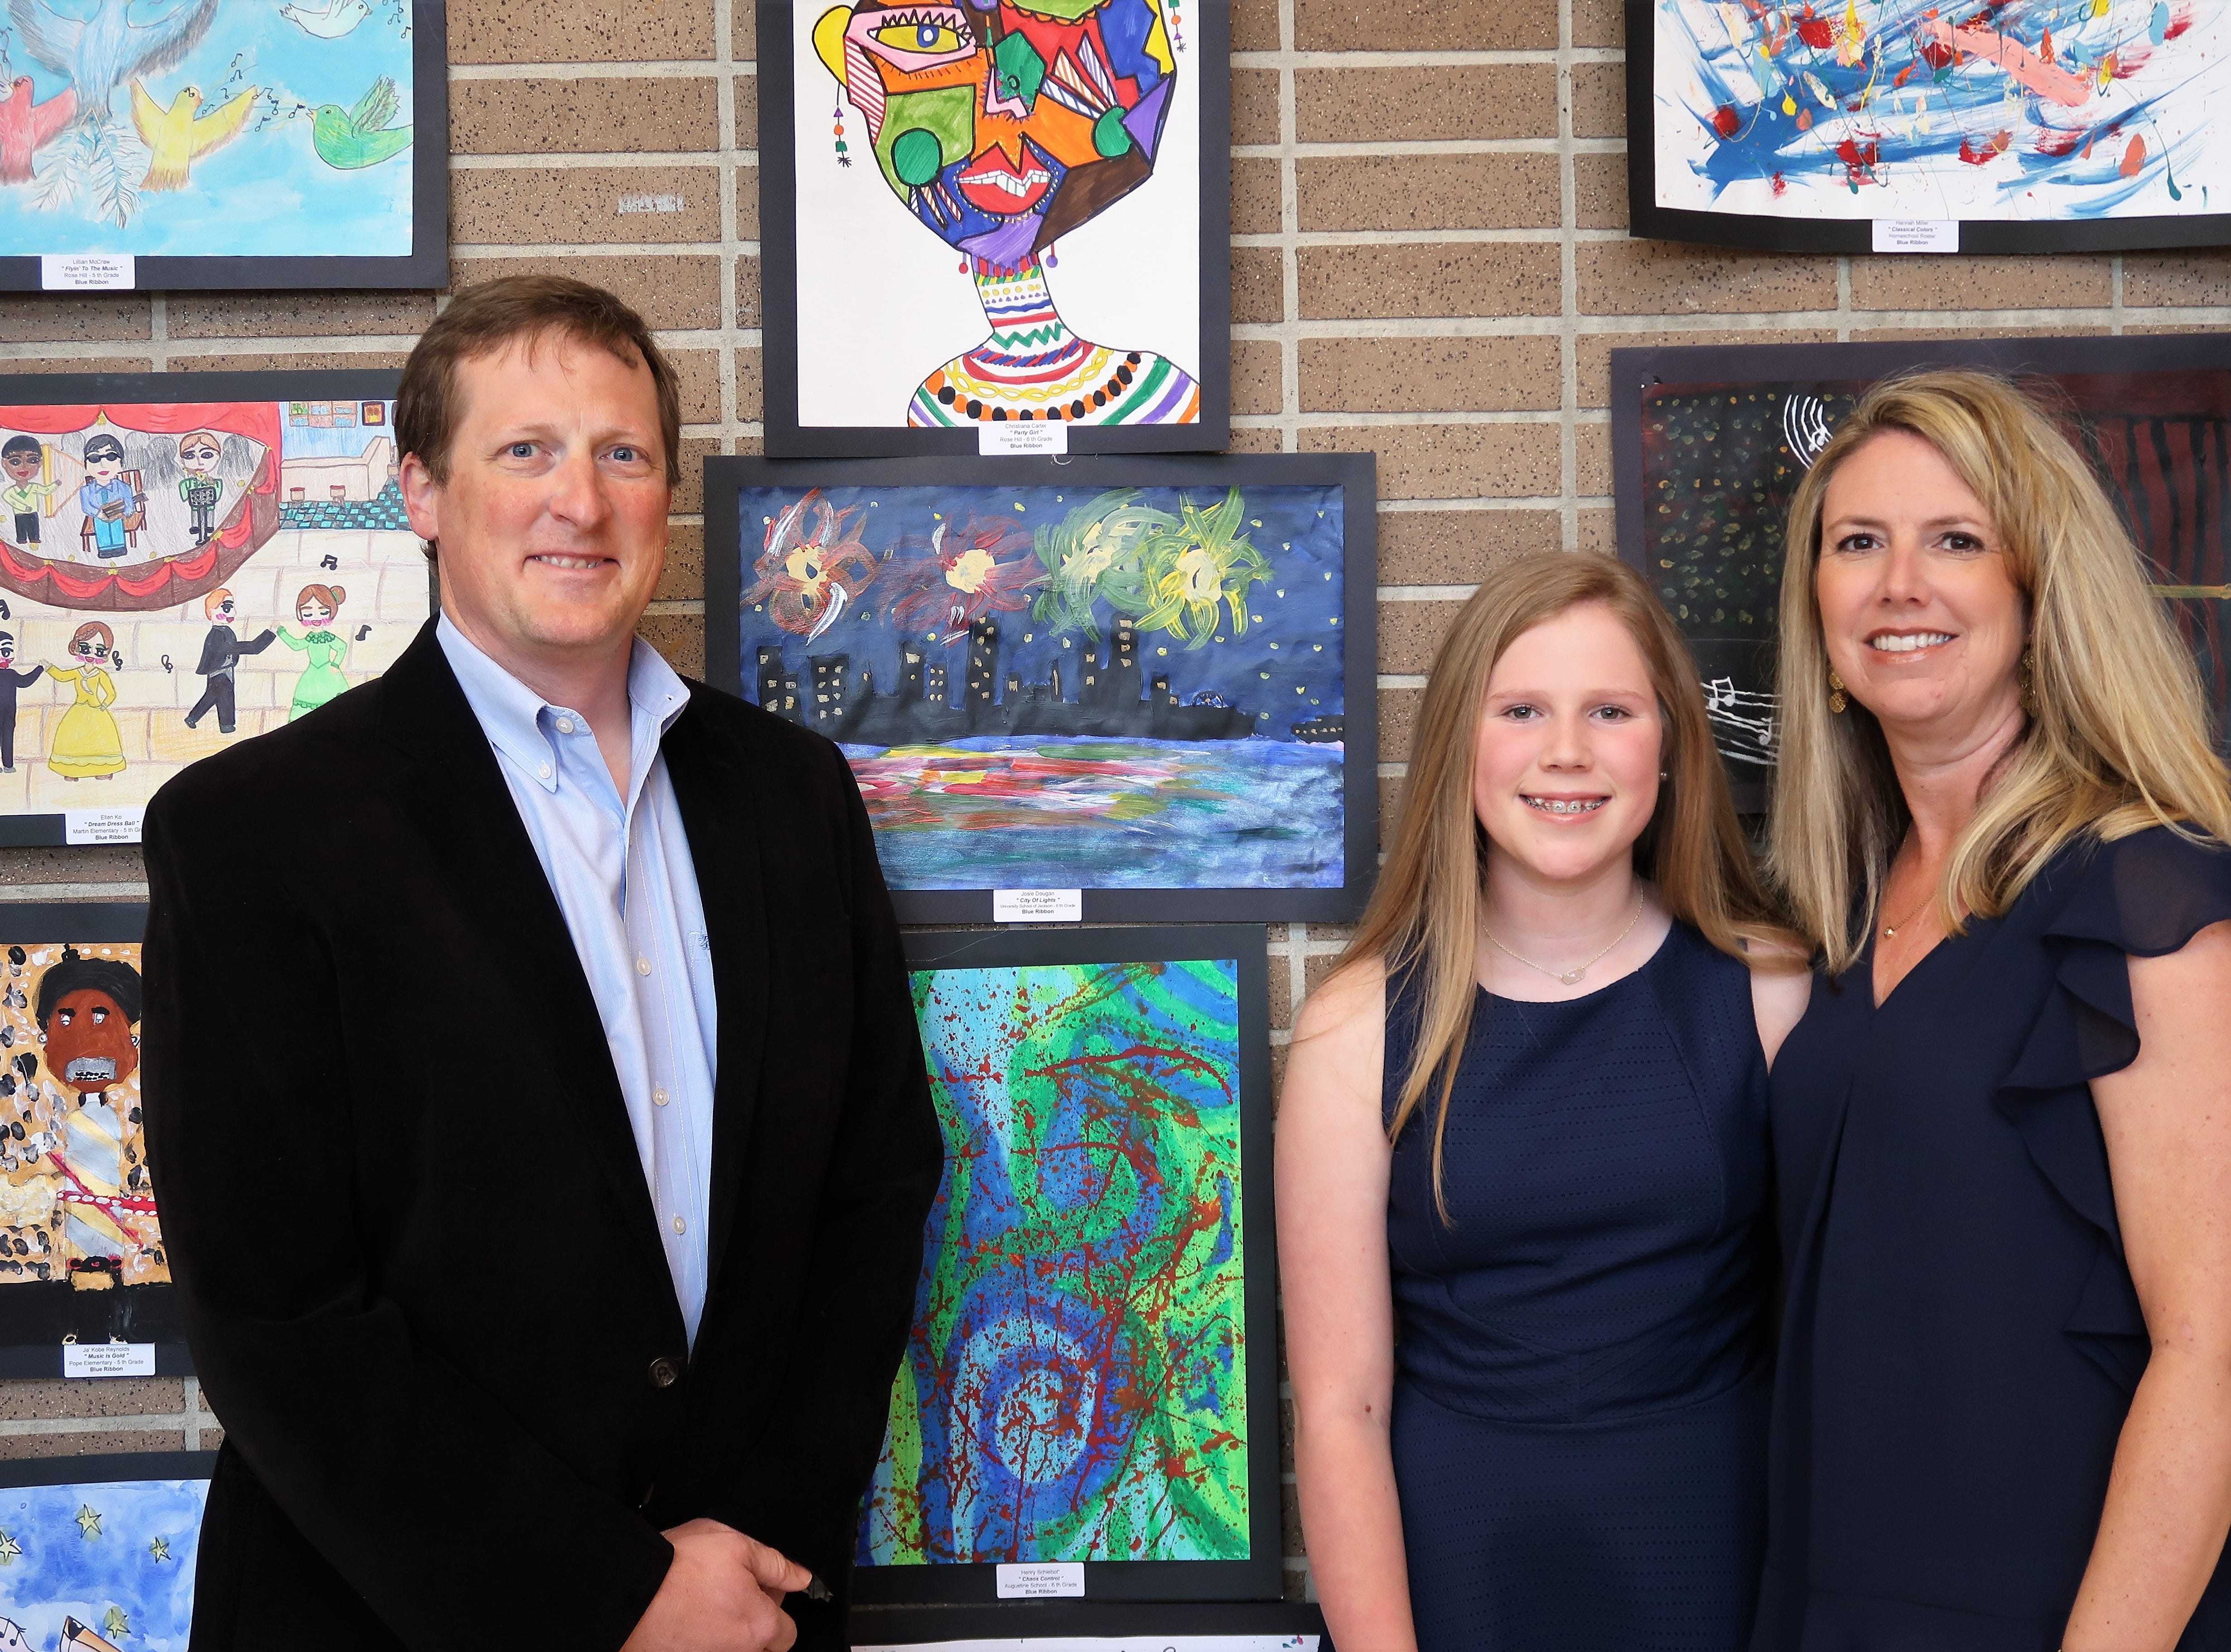 Brian Dougan, Josie Dougan and Amy Dougan pose with Josie's artwork at the 2019 Color of Music awards at the Carl Perkins Civic Center in Jackson on Saturday, April 13.